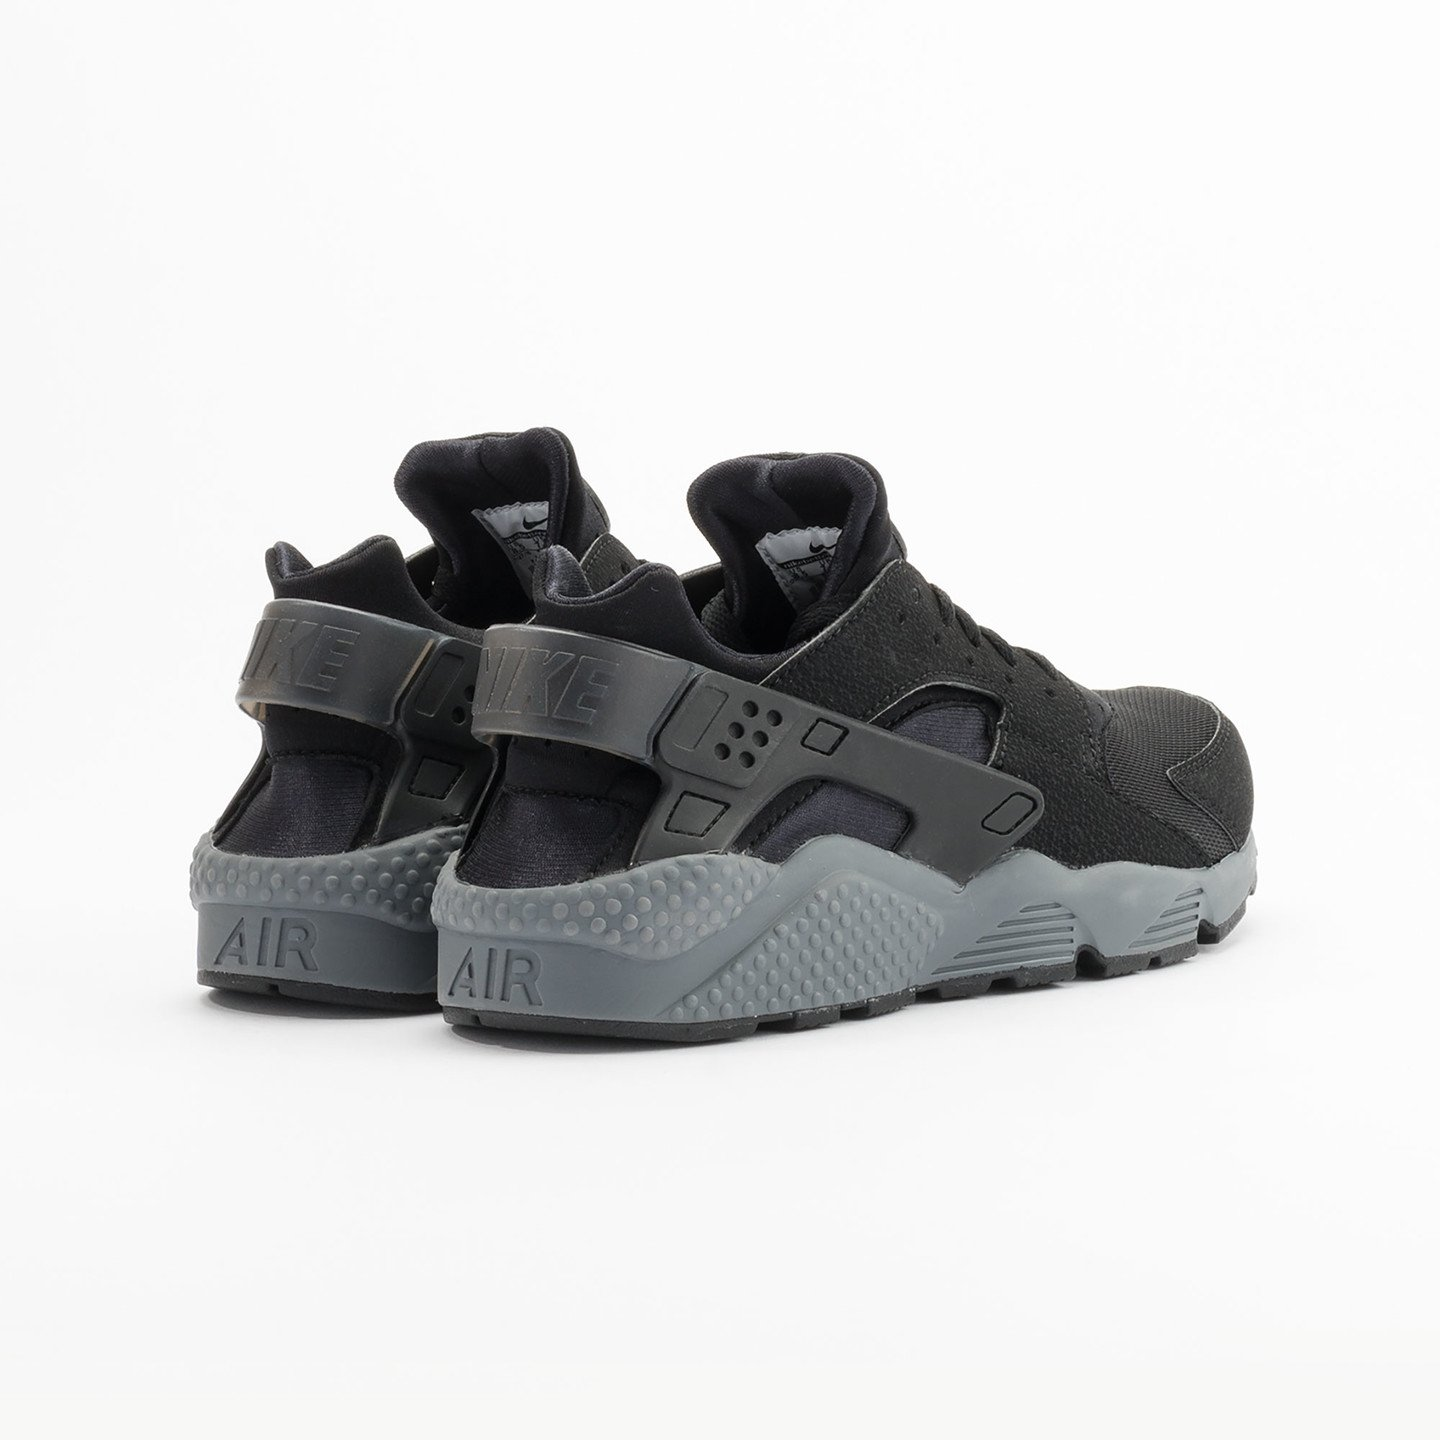 Nike Air Huarache Black / Dark Grey 318429-010-47.5